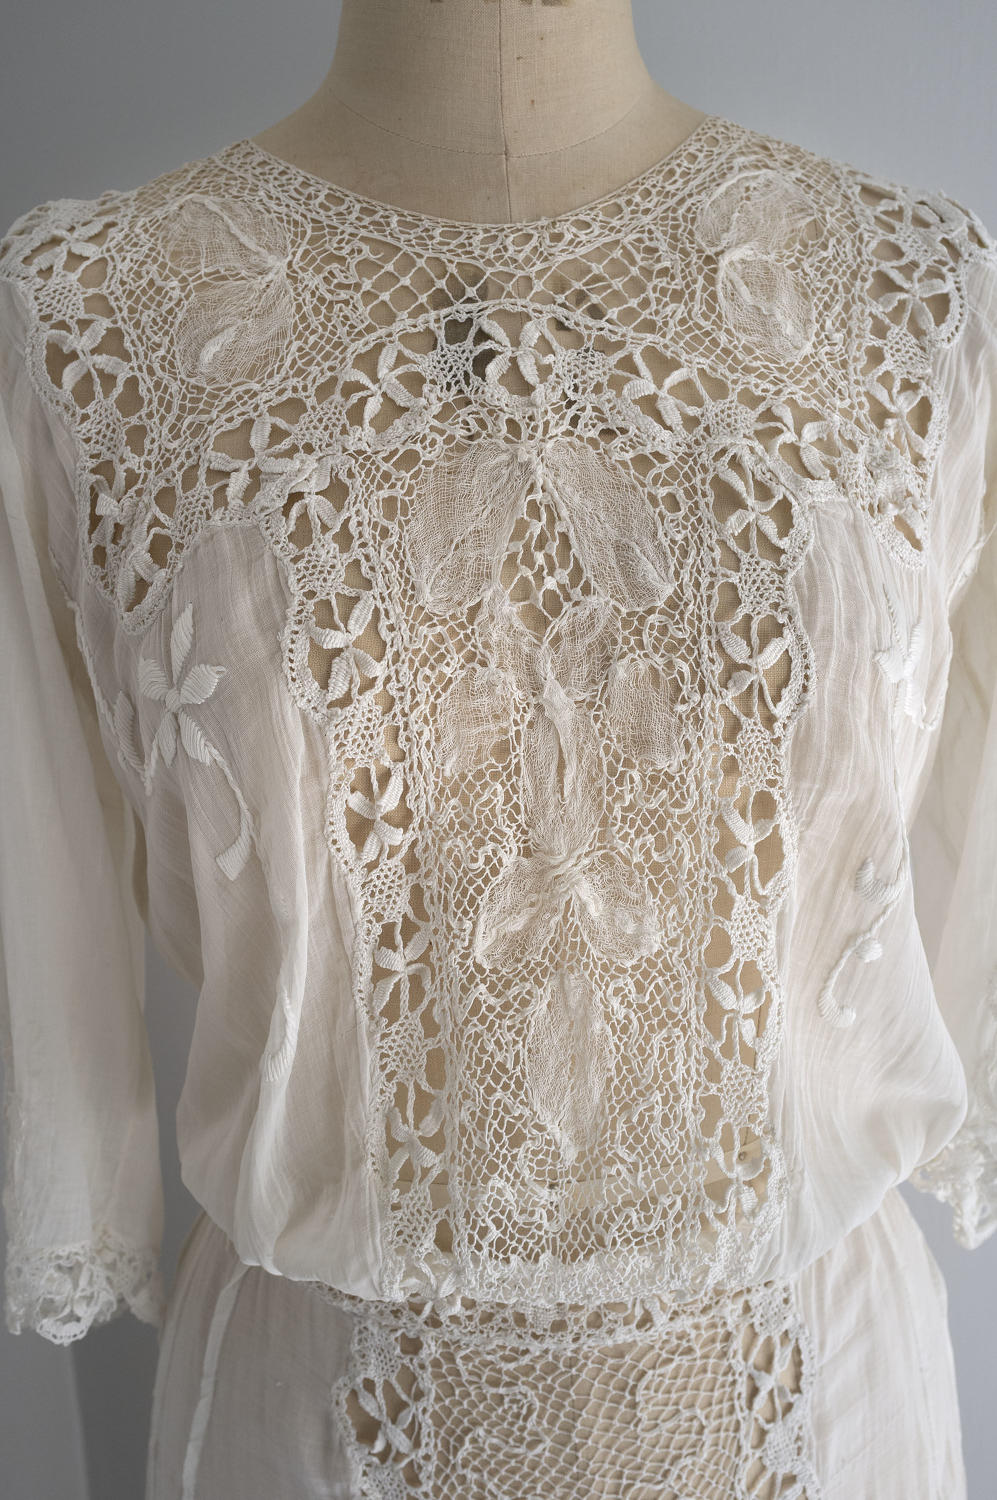 French White Embroidered Cotton and Lace Dress, circa 1910